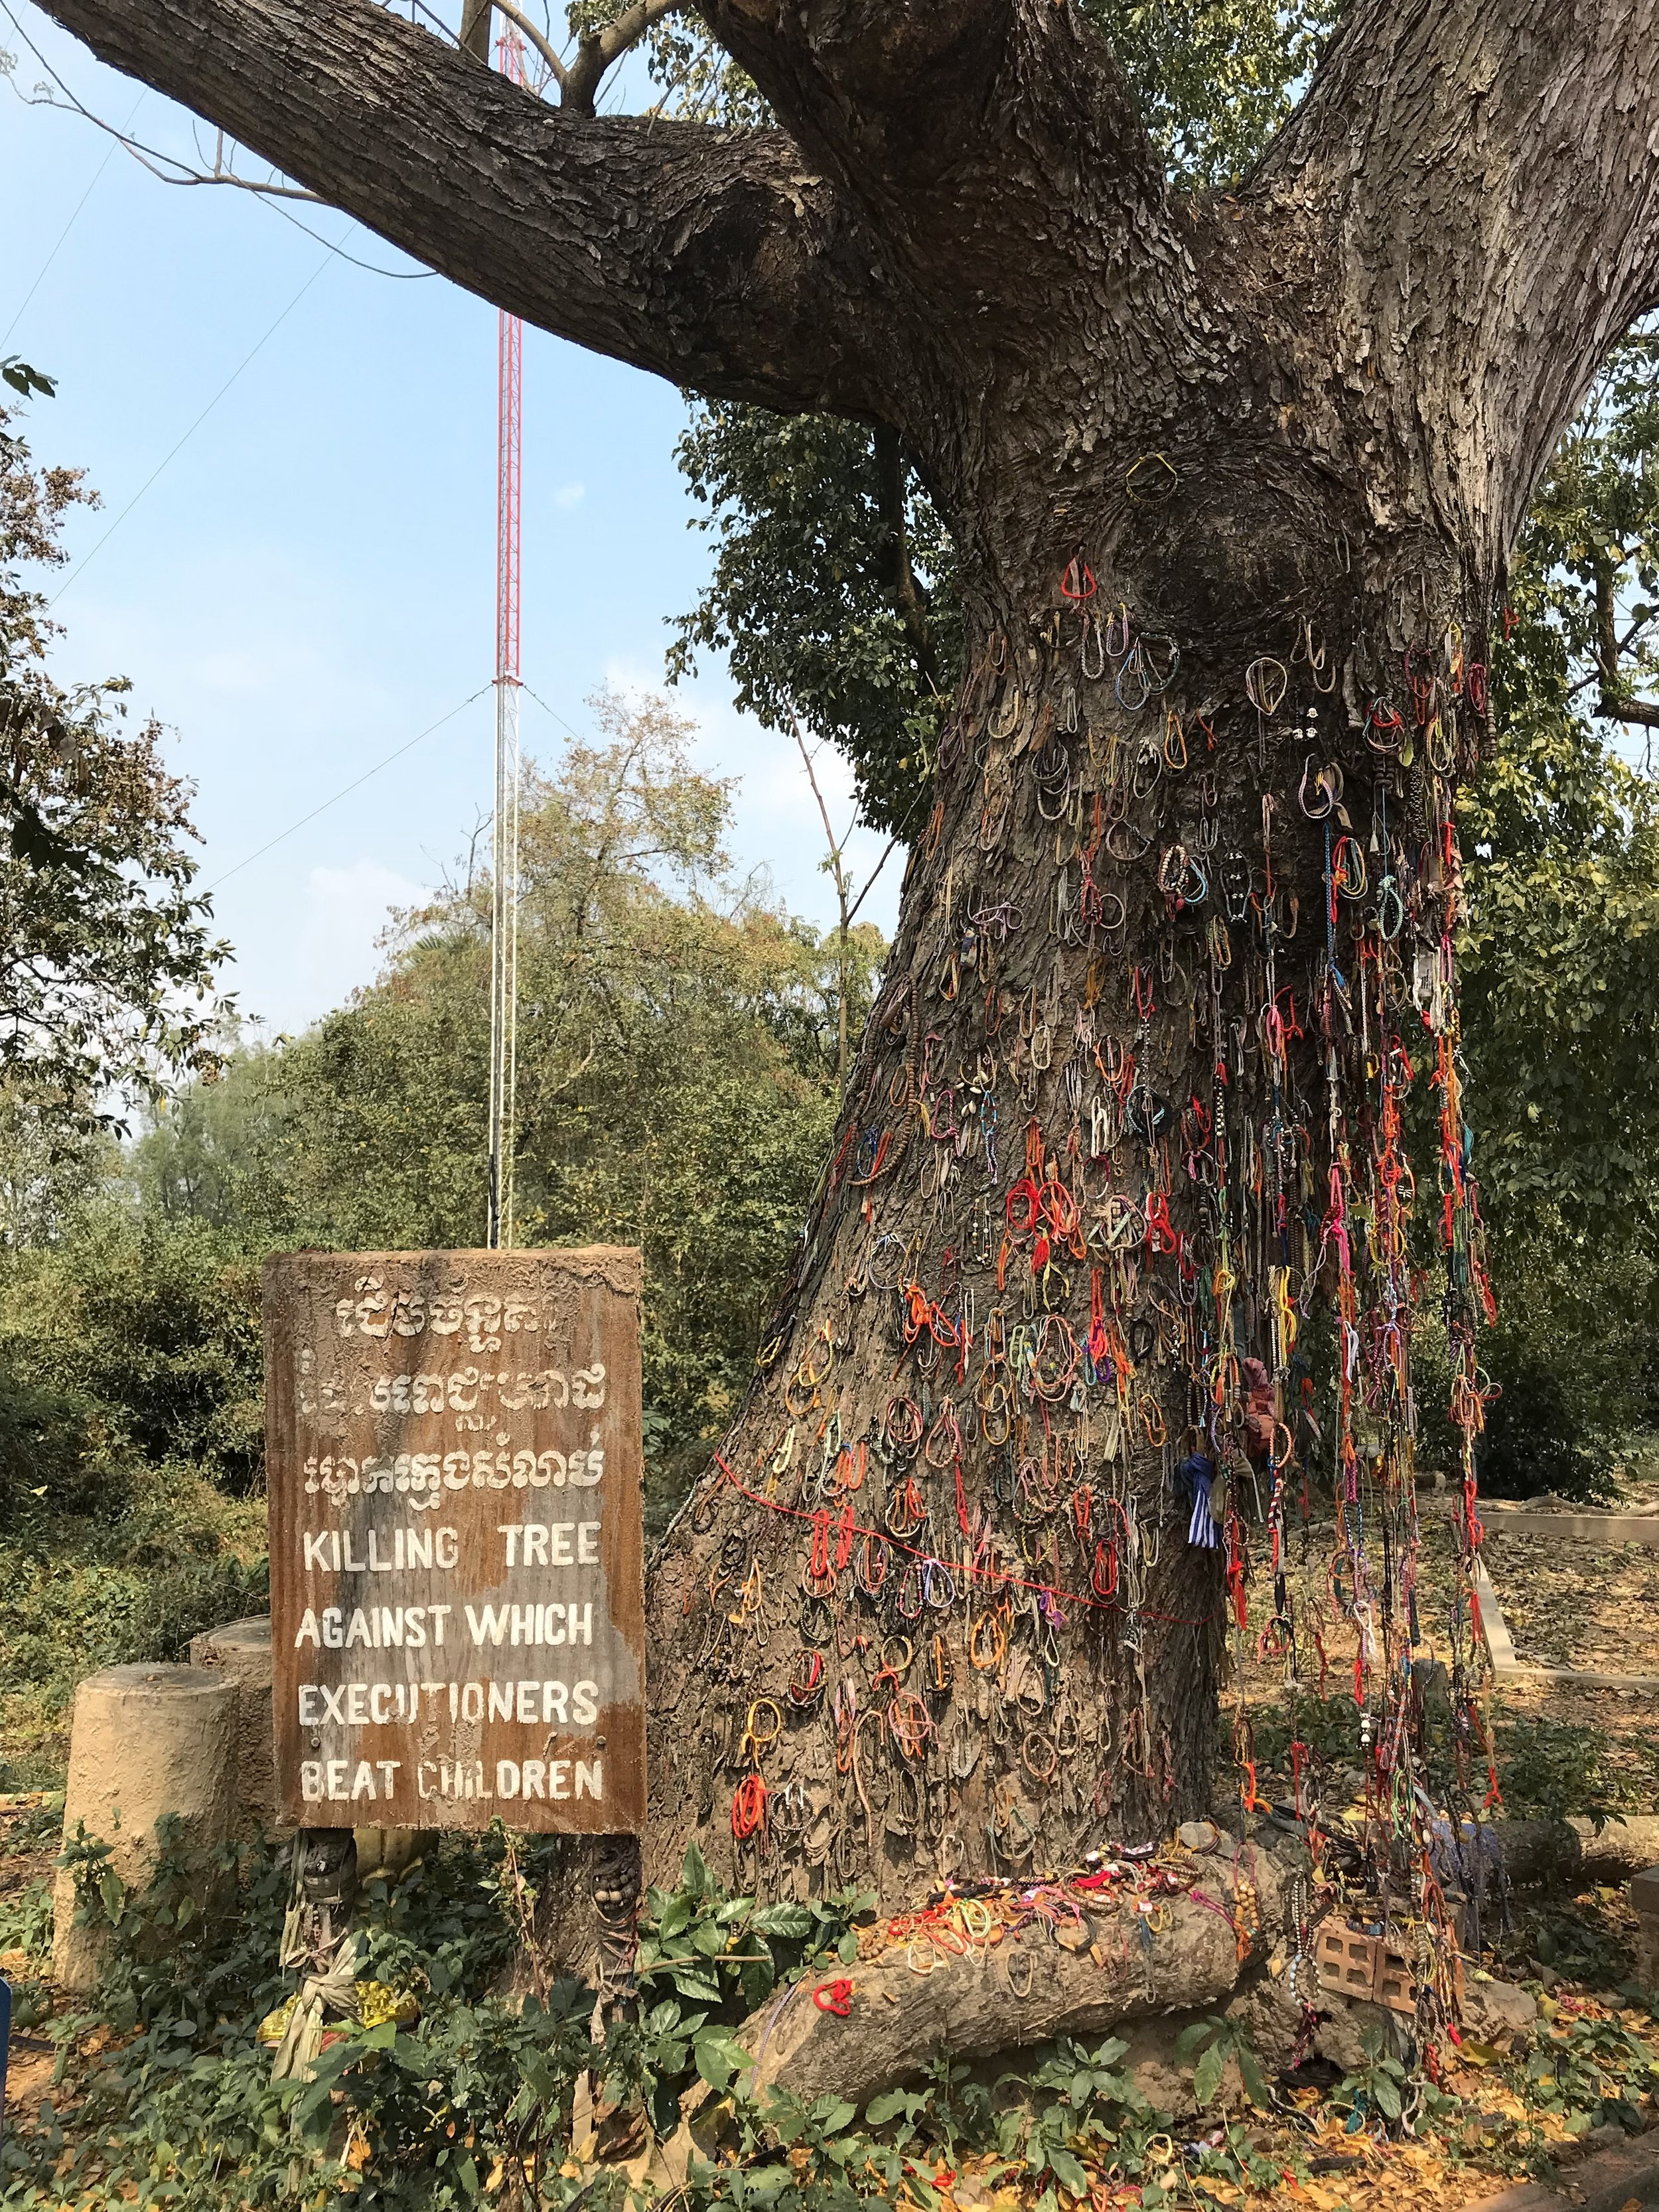 The Killing Tree that was used to smash babies' heads against before tossing their bodies into mass graves.